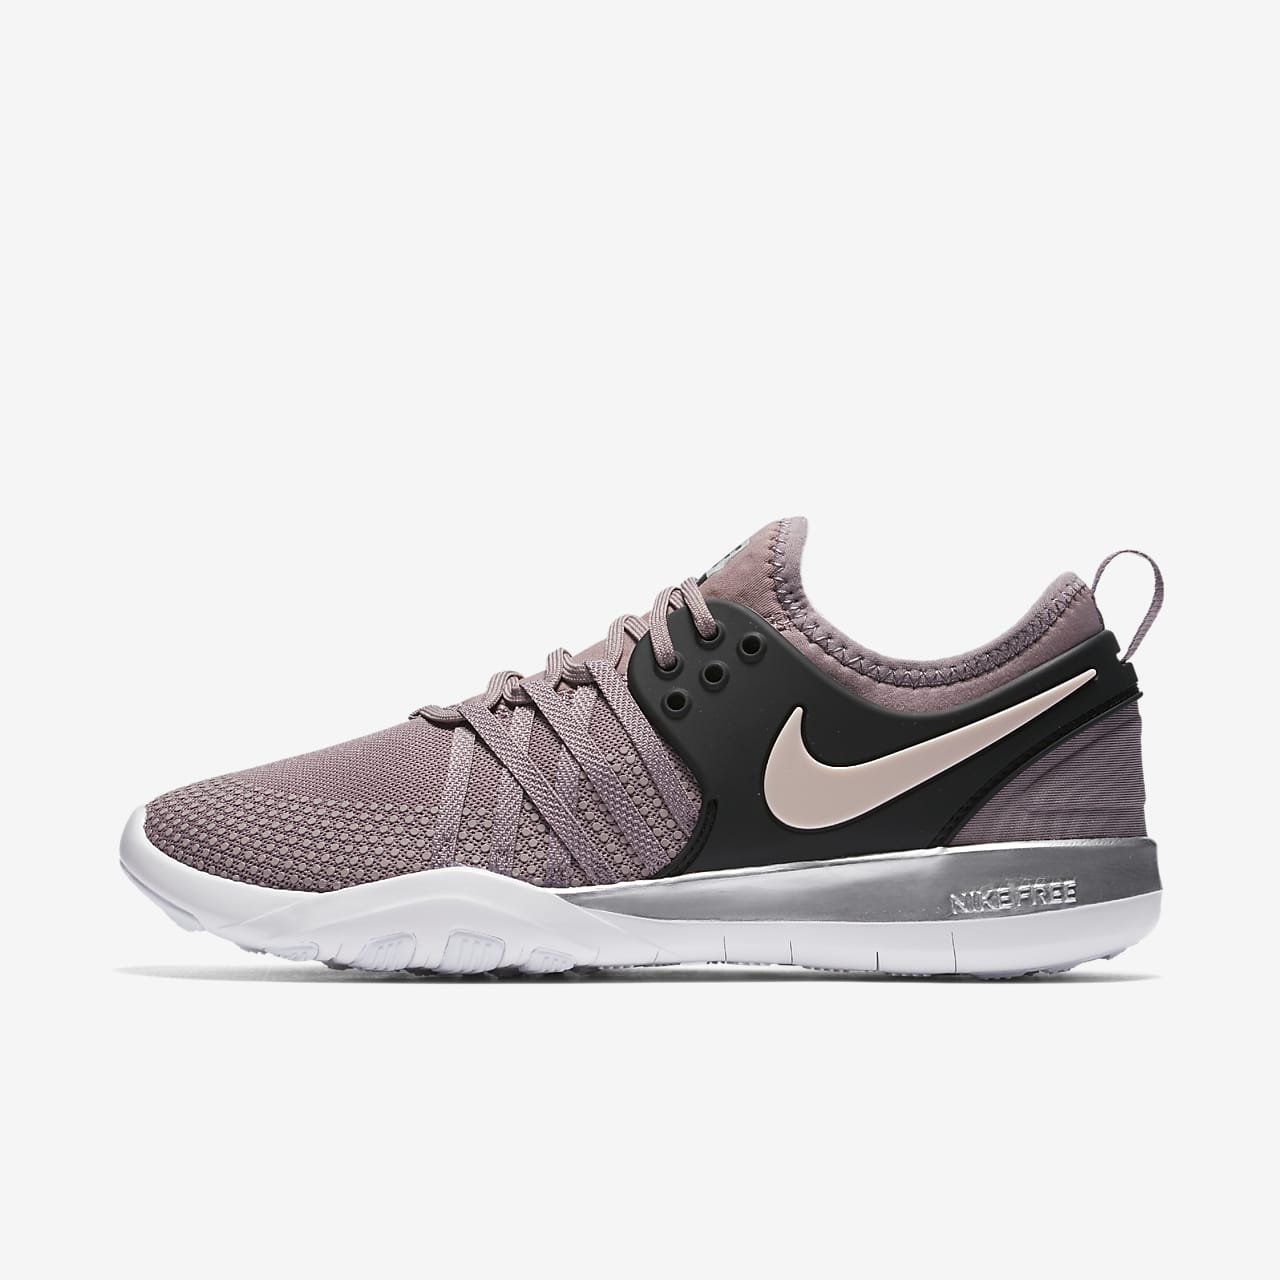 lanza Ambiente formación  Nike Free TR 7 Chrome Blush Women's Gym/HIIT/Cross Training Shoe. Nike ID